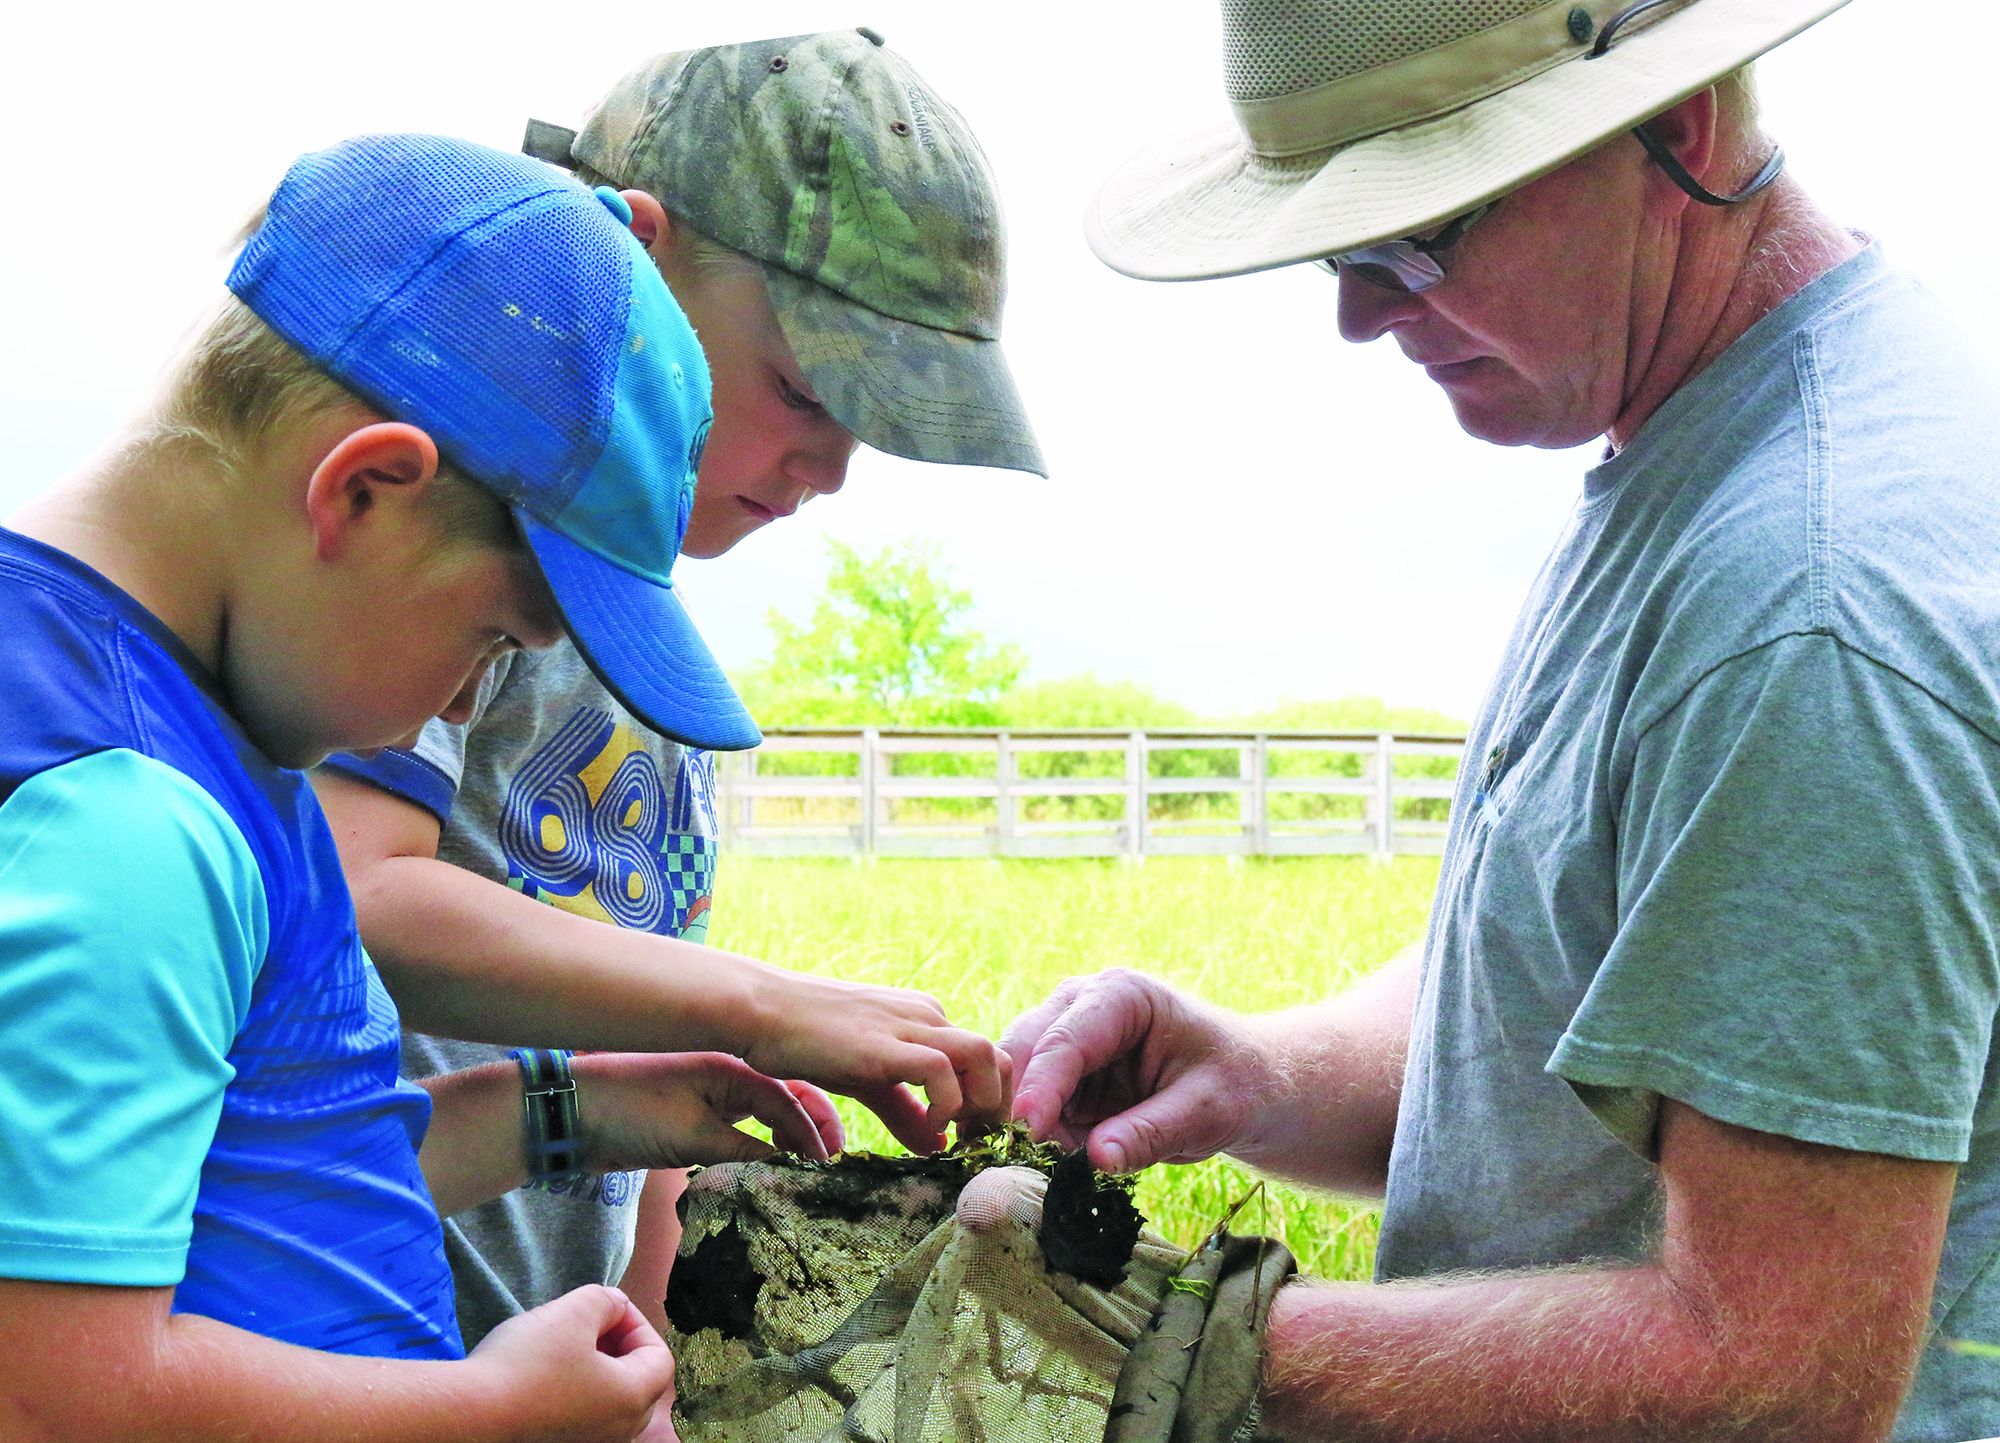 Jeremiah Hodges, left, and Evan Rankin help naturalist Tim Ewing sort through the leaves, mud, eggs, tadpoles and insects scooped from a swamp and pond area at the nature center.Carol Ryczek | NEW Media